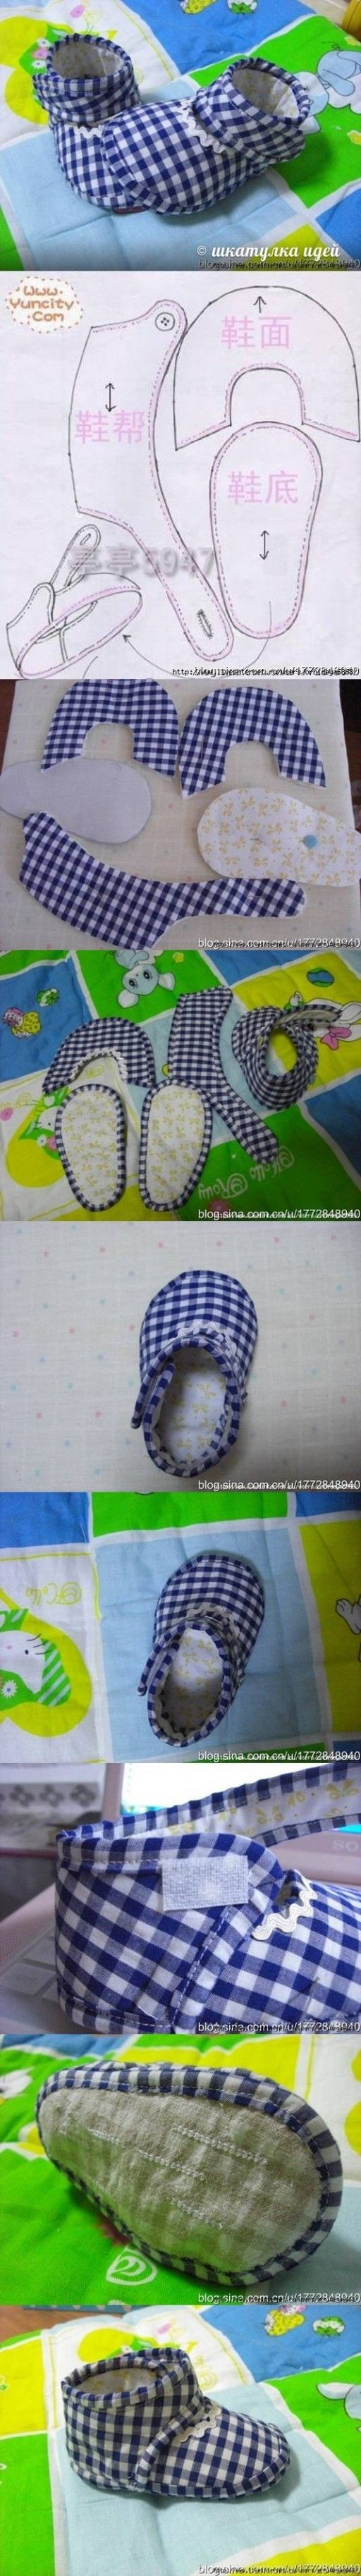 How to make Slippers for Babies step by step DIY tutorial instructions , How to, how to do, diy instructions, crafts, do it yourself, diy we by Mary Smith fSesz